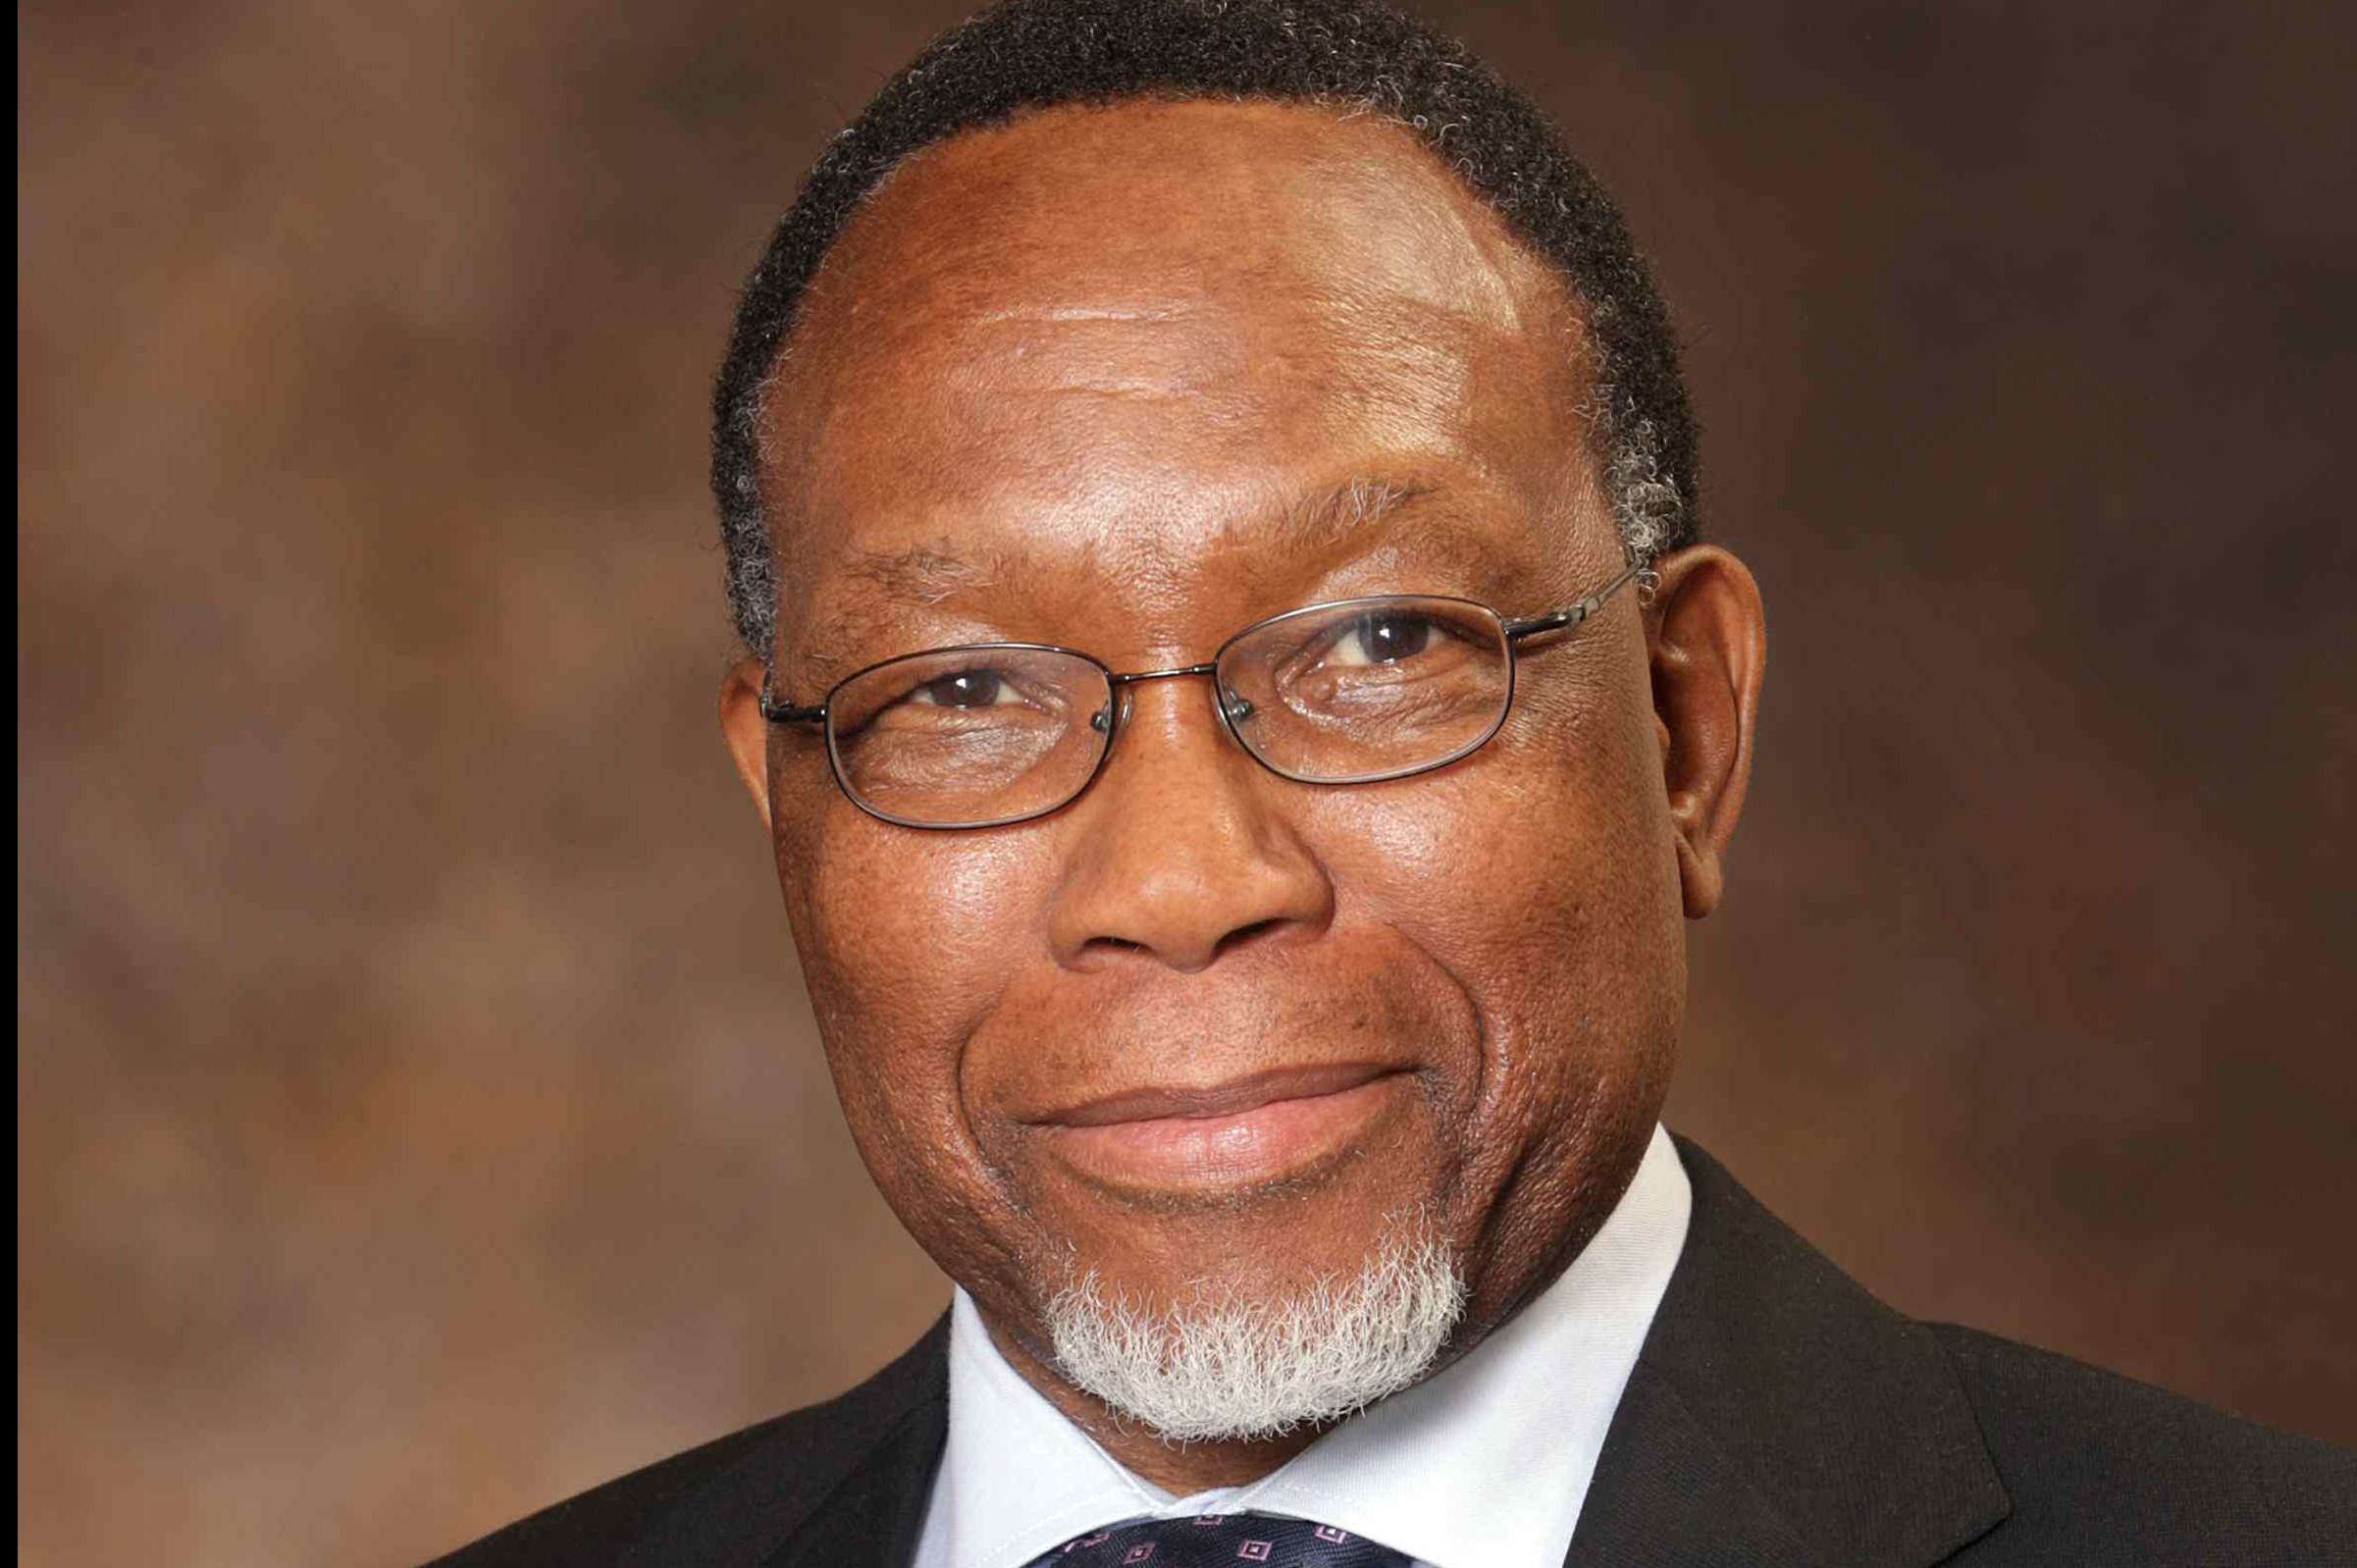 Motlanthe to lead struggle to access to quality eye health and treatment for Africa's children